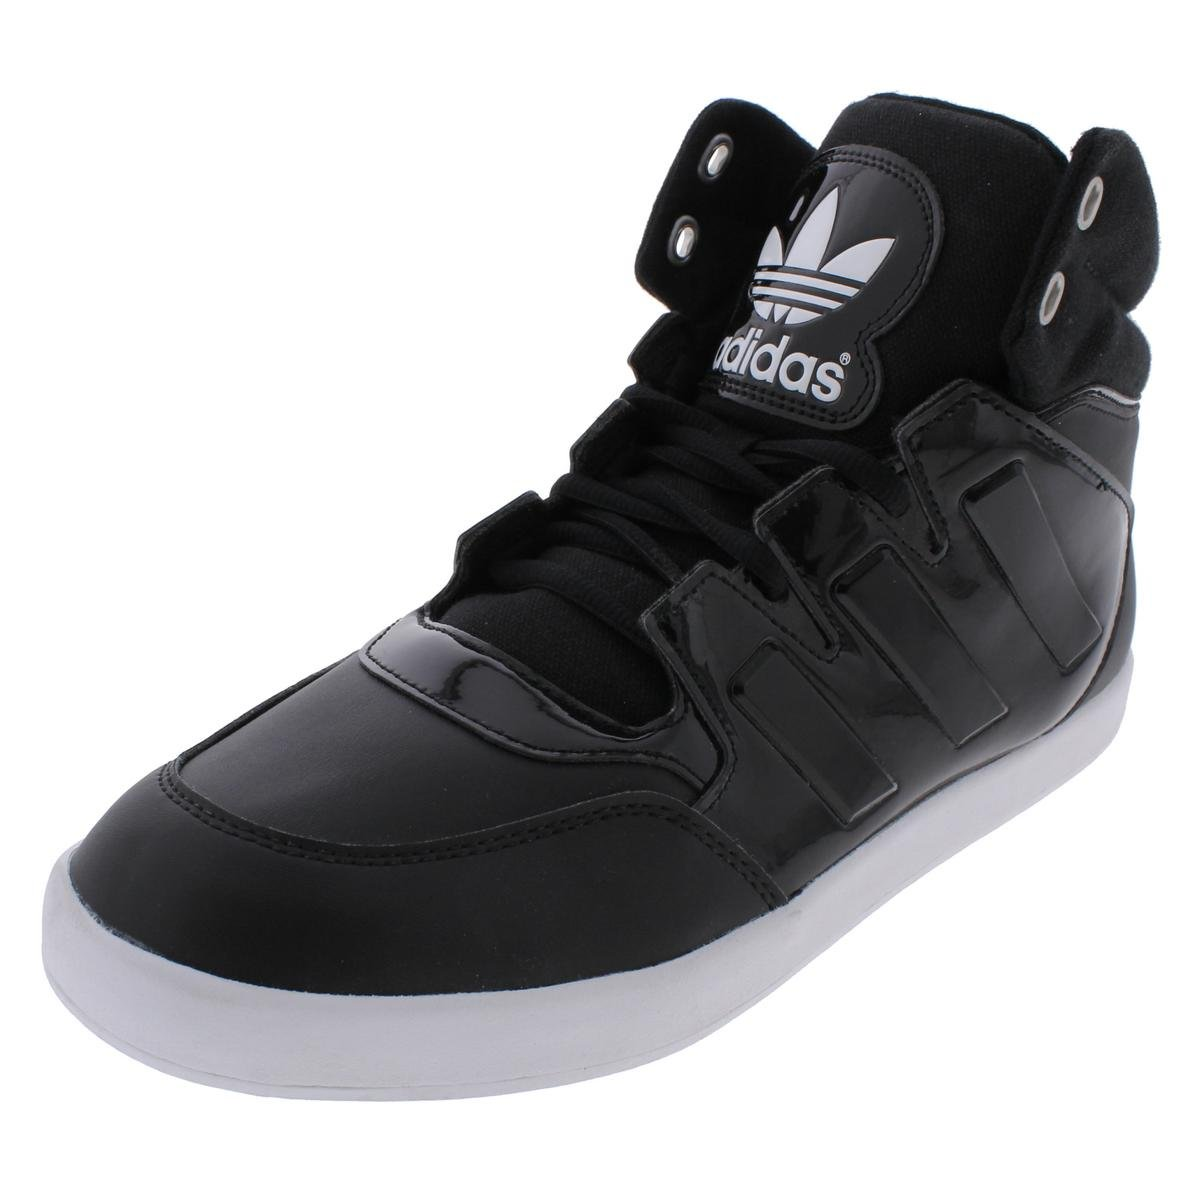 newest fe8c6 1a0b9 Amazon.com  adidas Dropstep Basketball or Casual Shoes Sneakers CFS Men  Size 10.5  Basketball